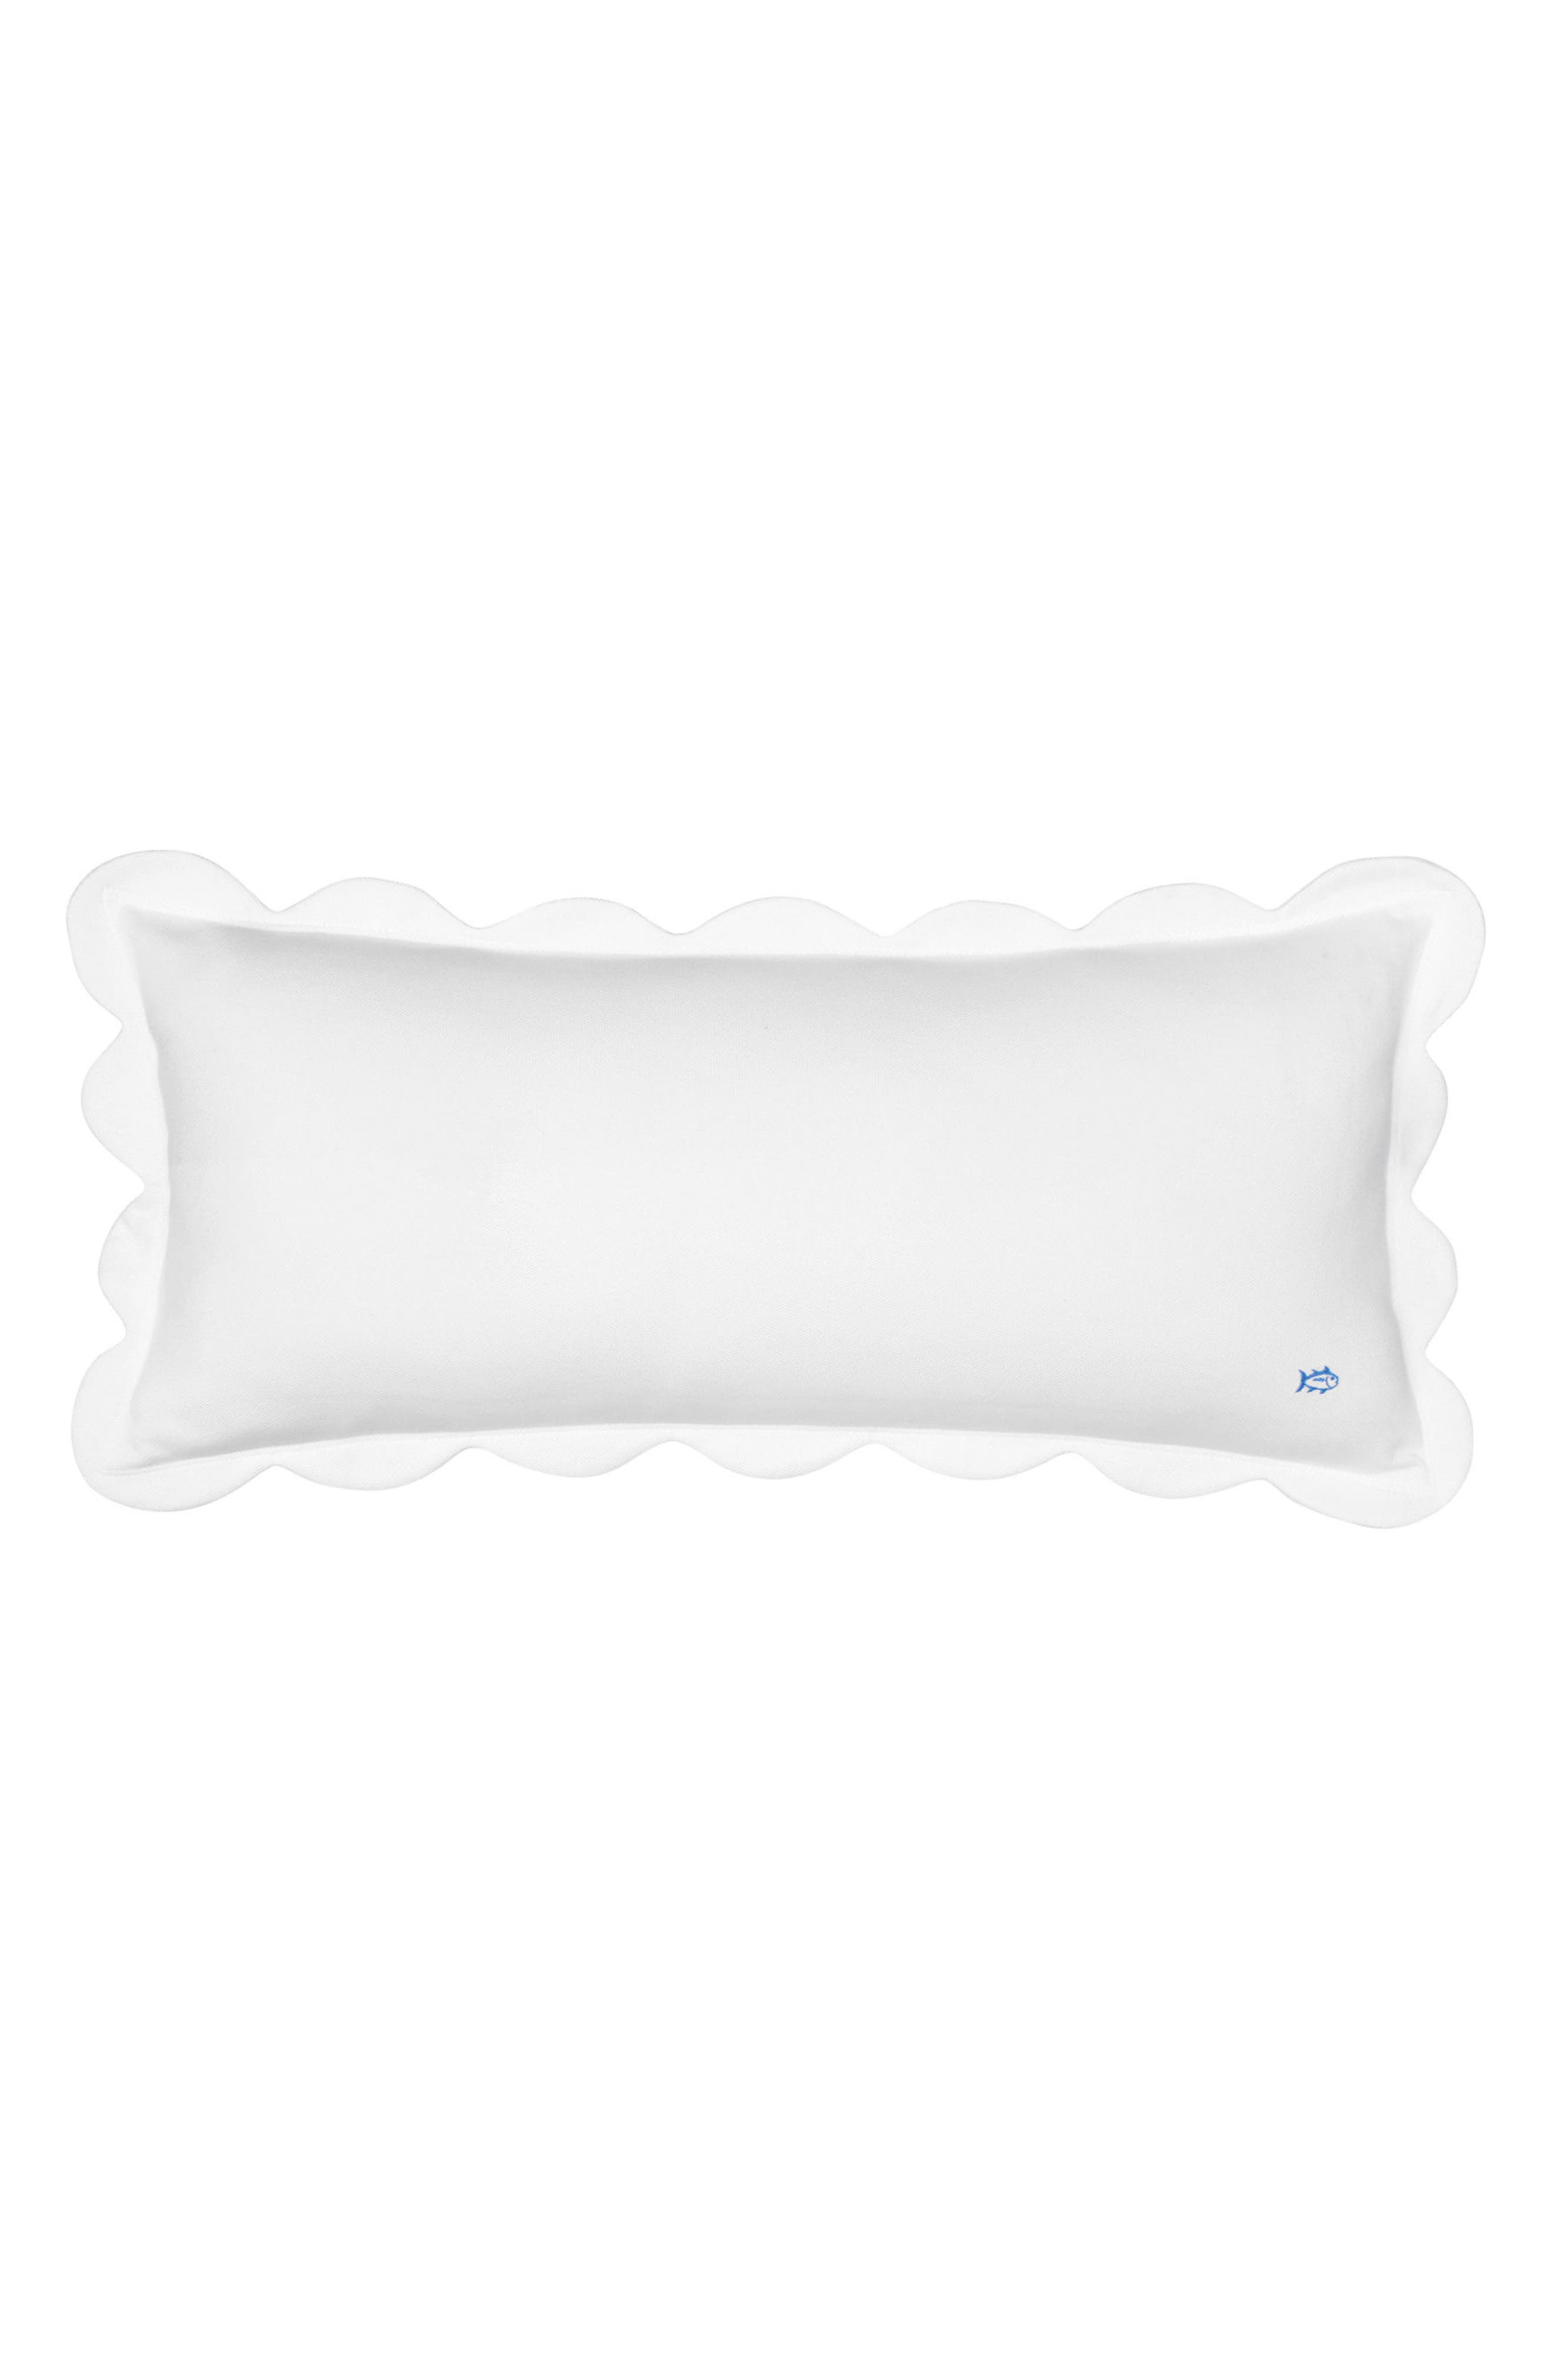 Sailgate Scalloped Accent Pillow,                             Main thumbnail 1, color,                             White